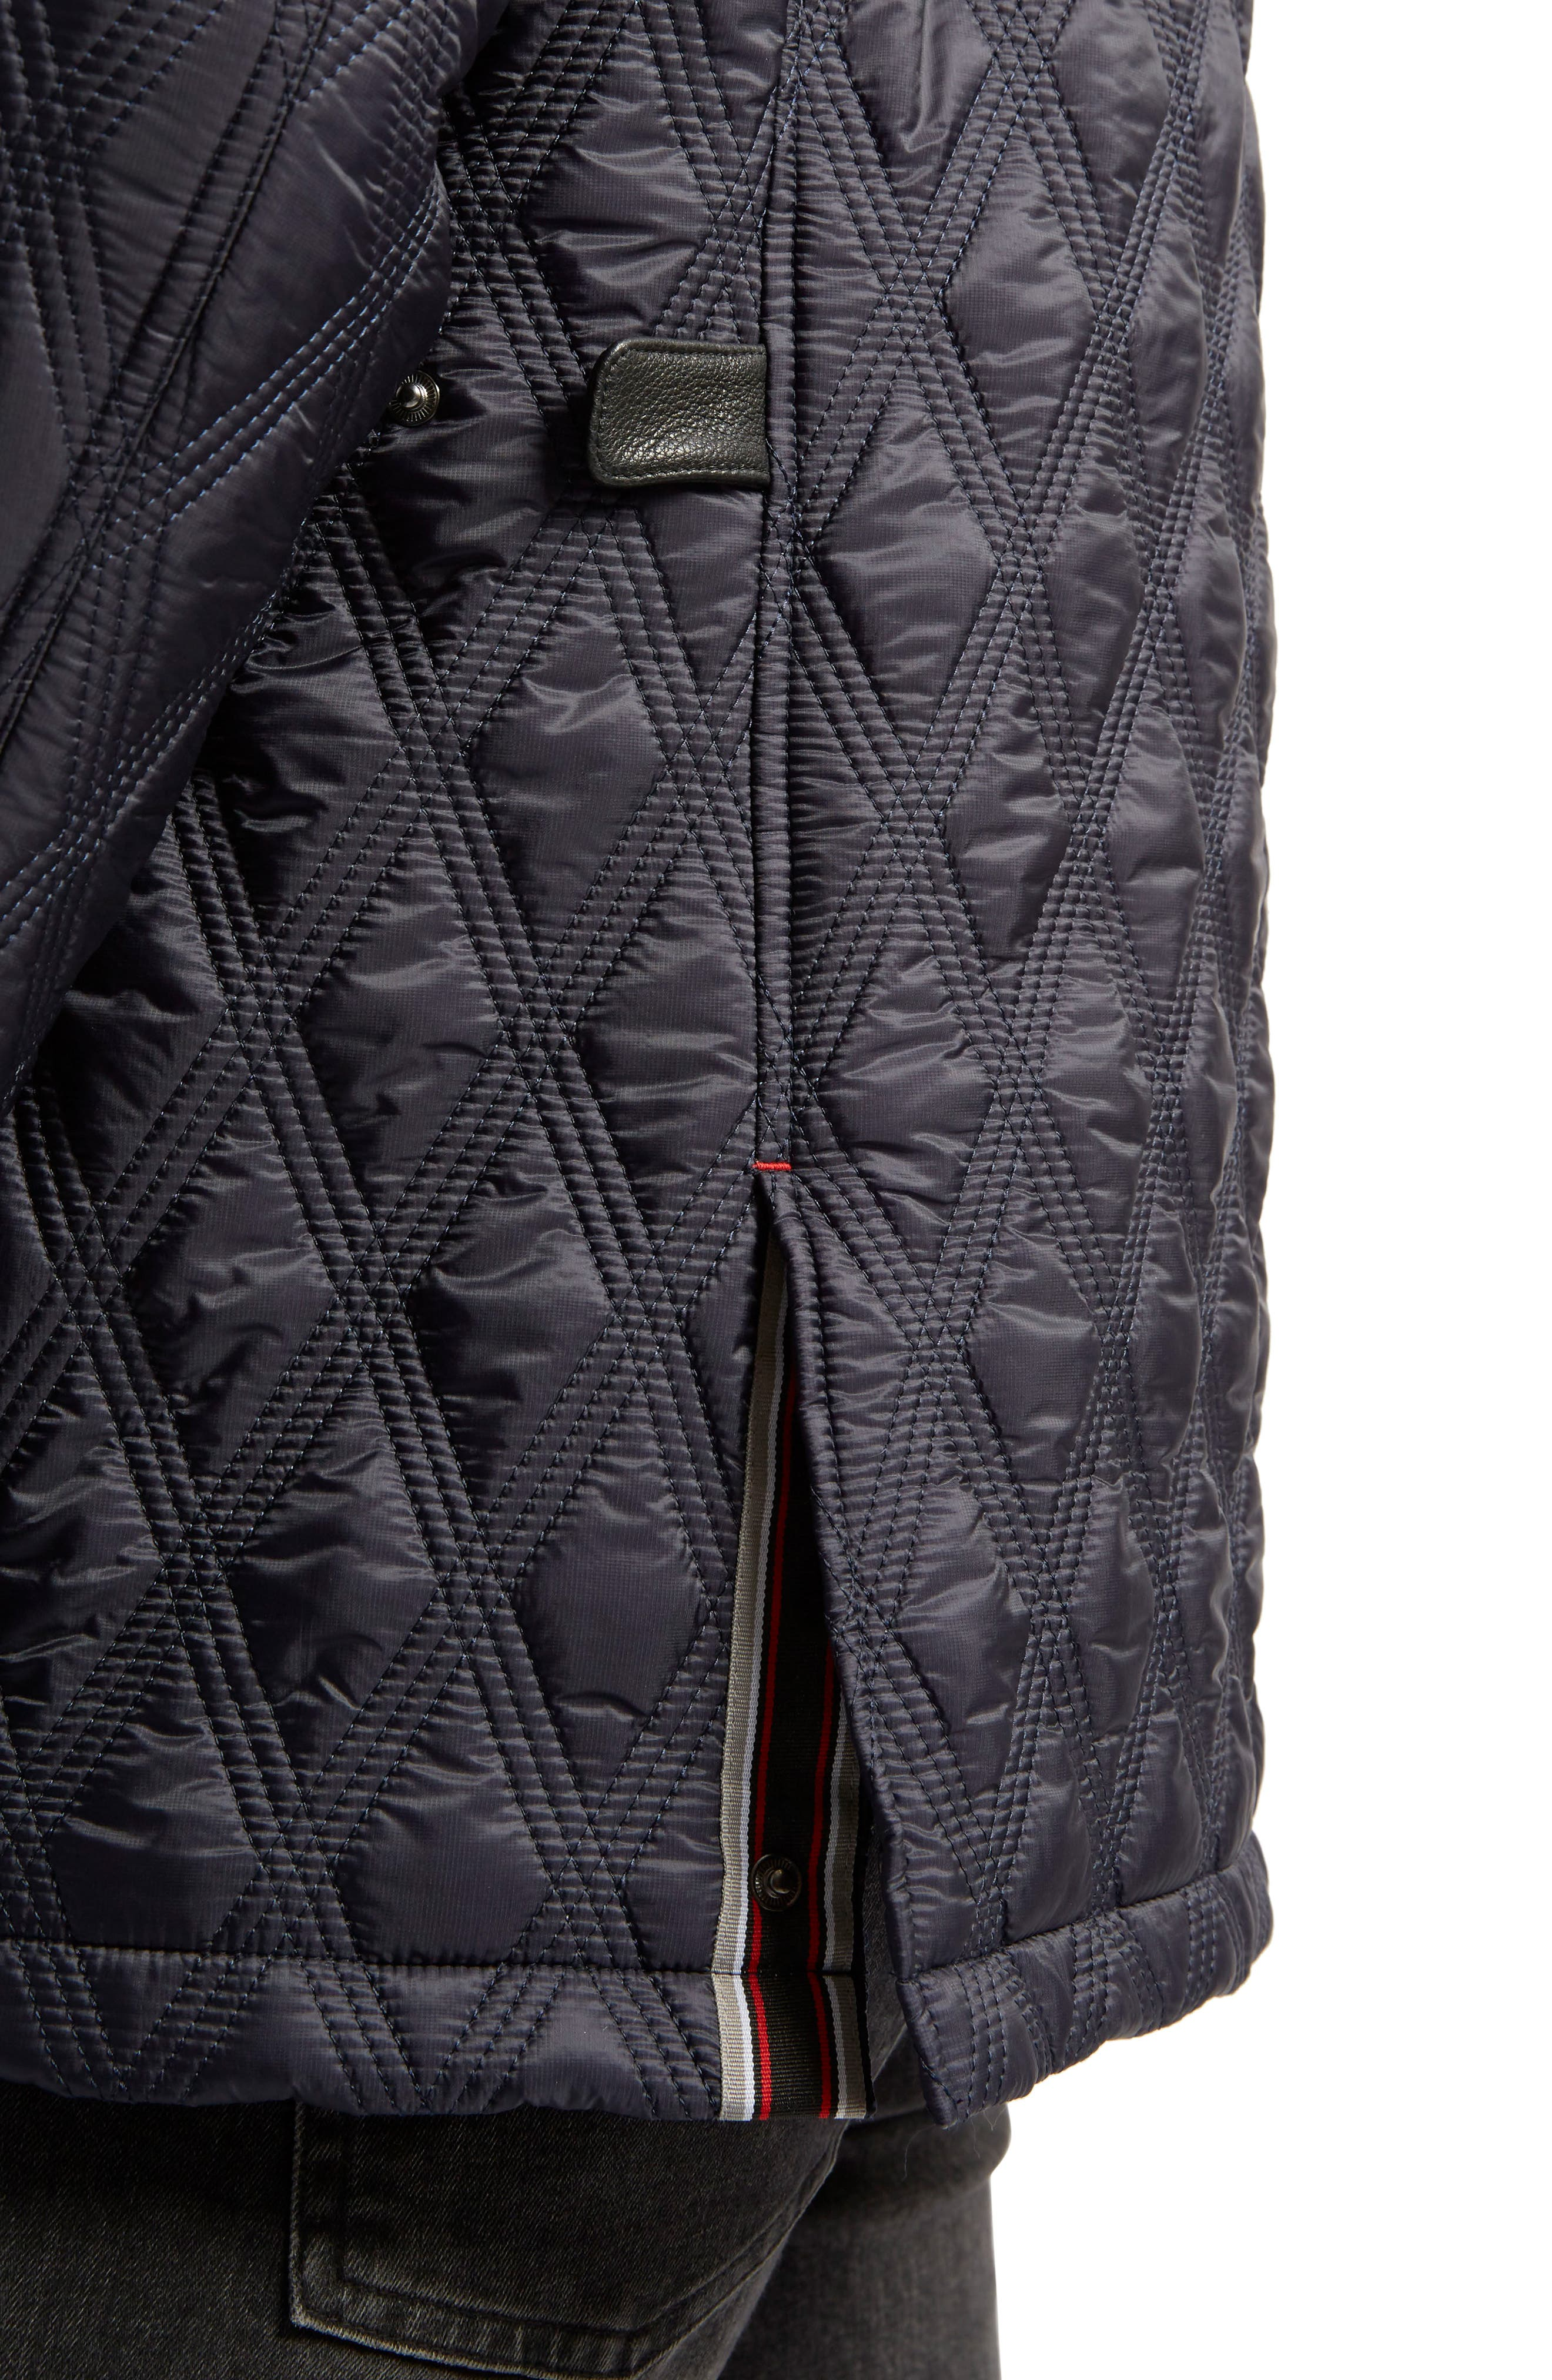 Prichard Triple Stitch Quilted Heat System Jacket,                             Alternate thumbnail 7, color,                             Midnight